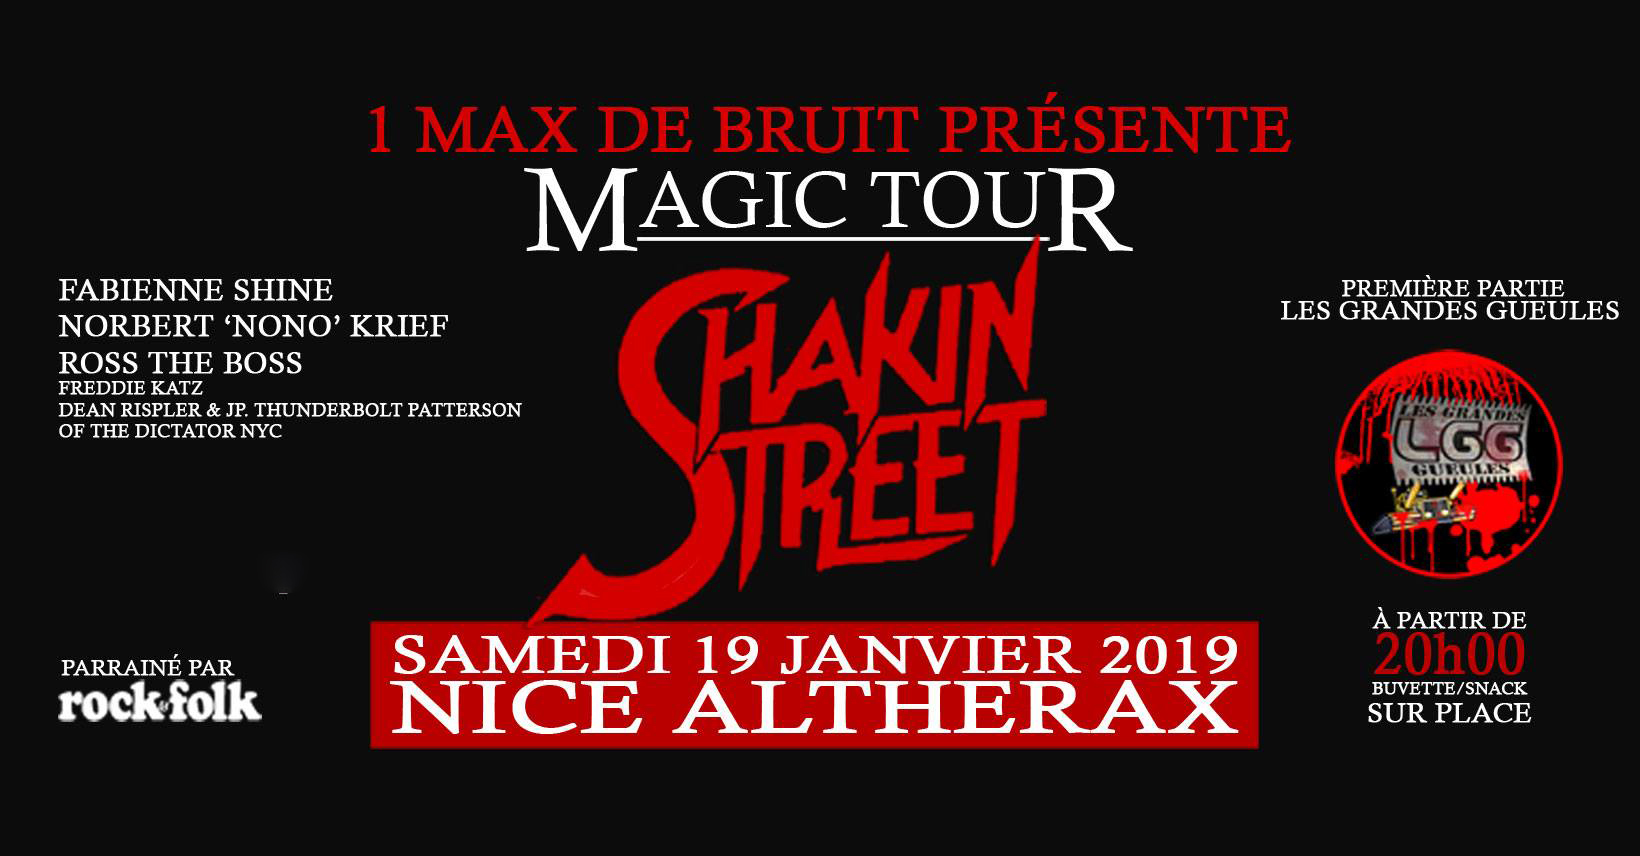 Billetterie : SHAKIN STREET - MAGIC TOUR